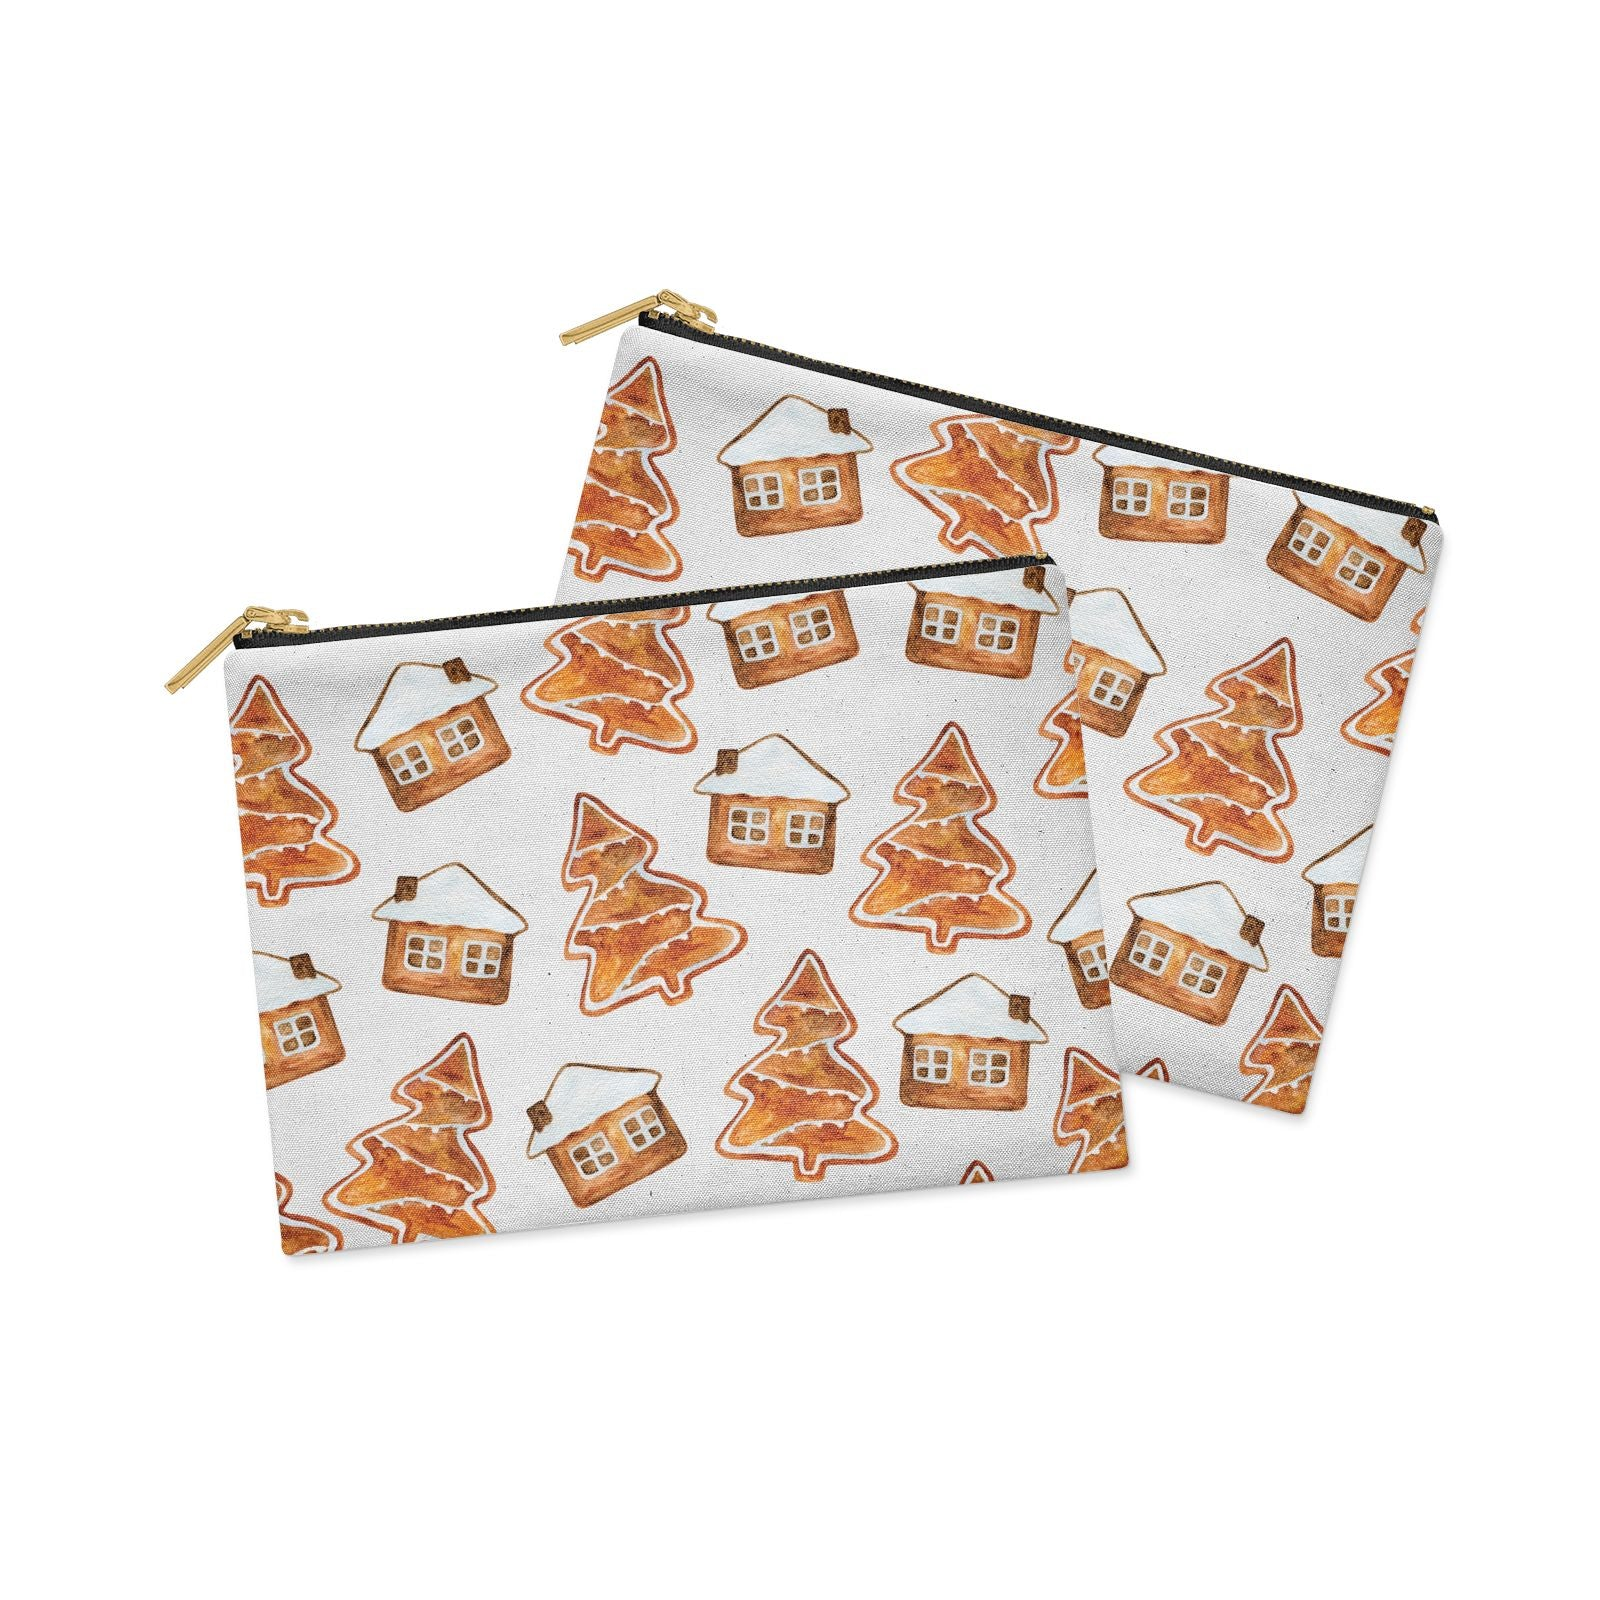 Gingerbread House Tree Clutch Bag Zipper Pouch Alternative View